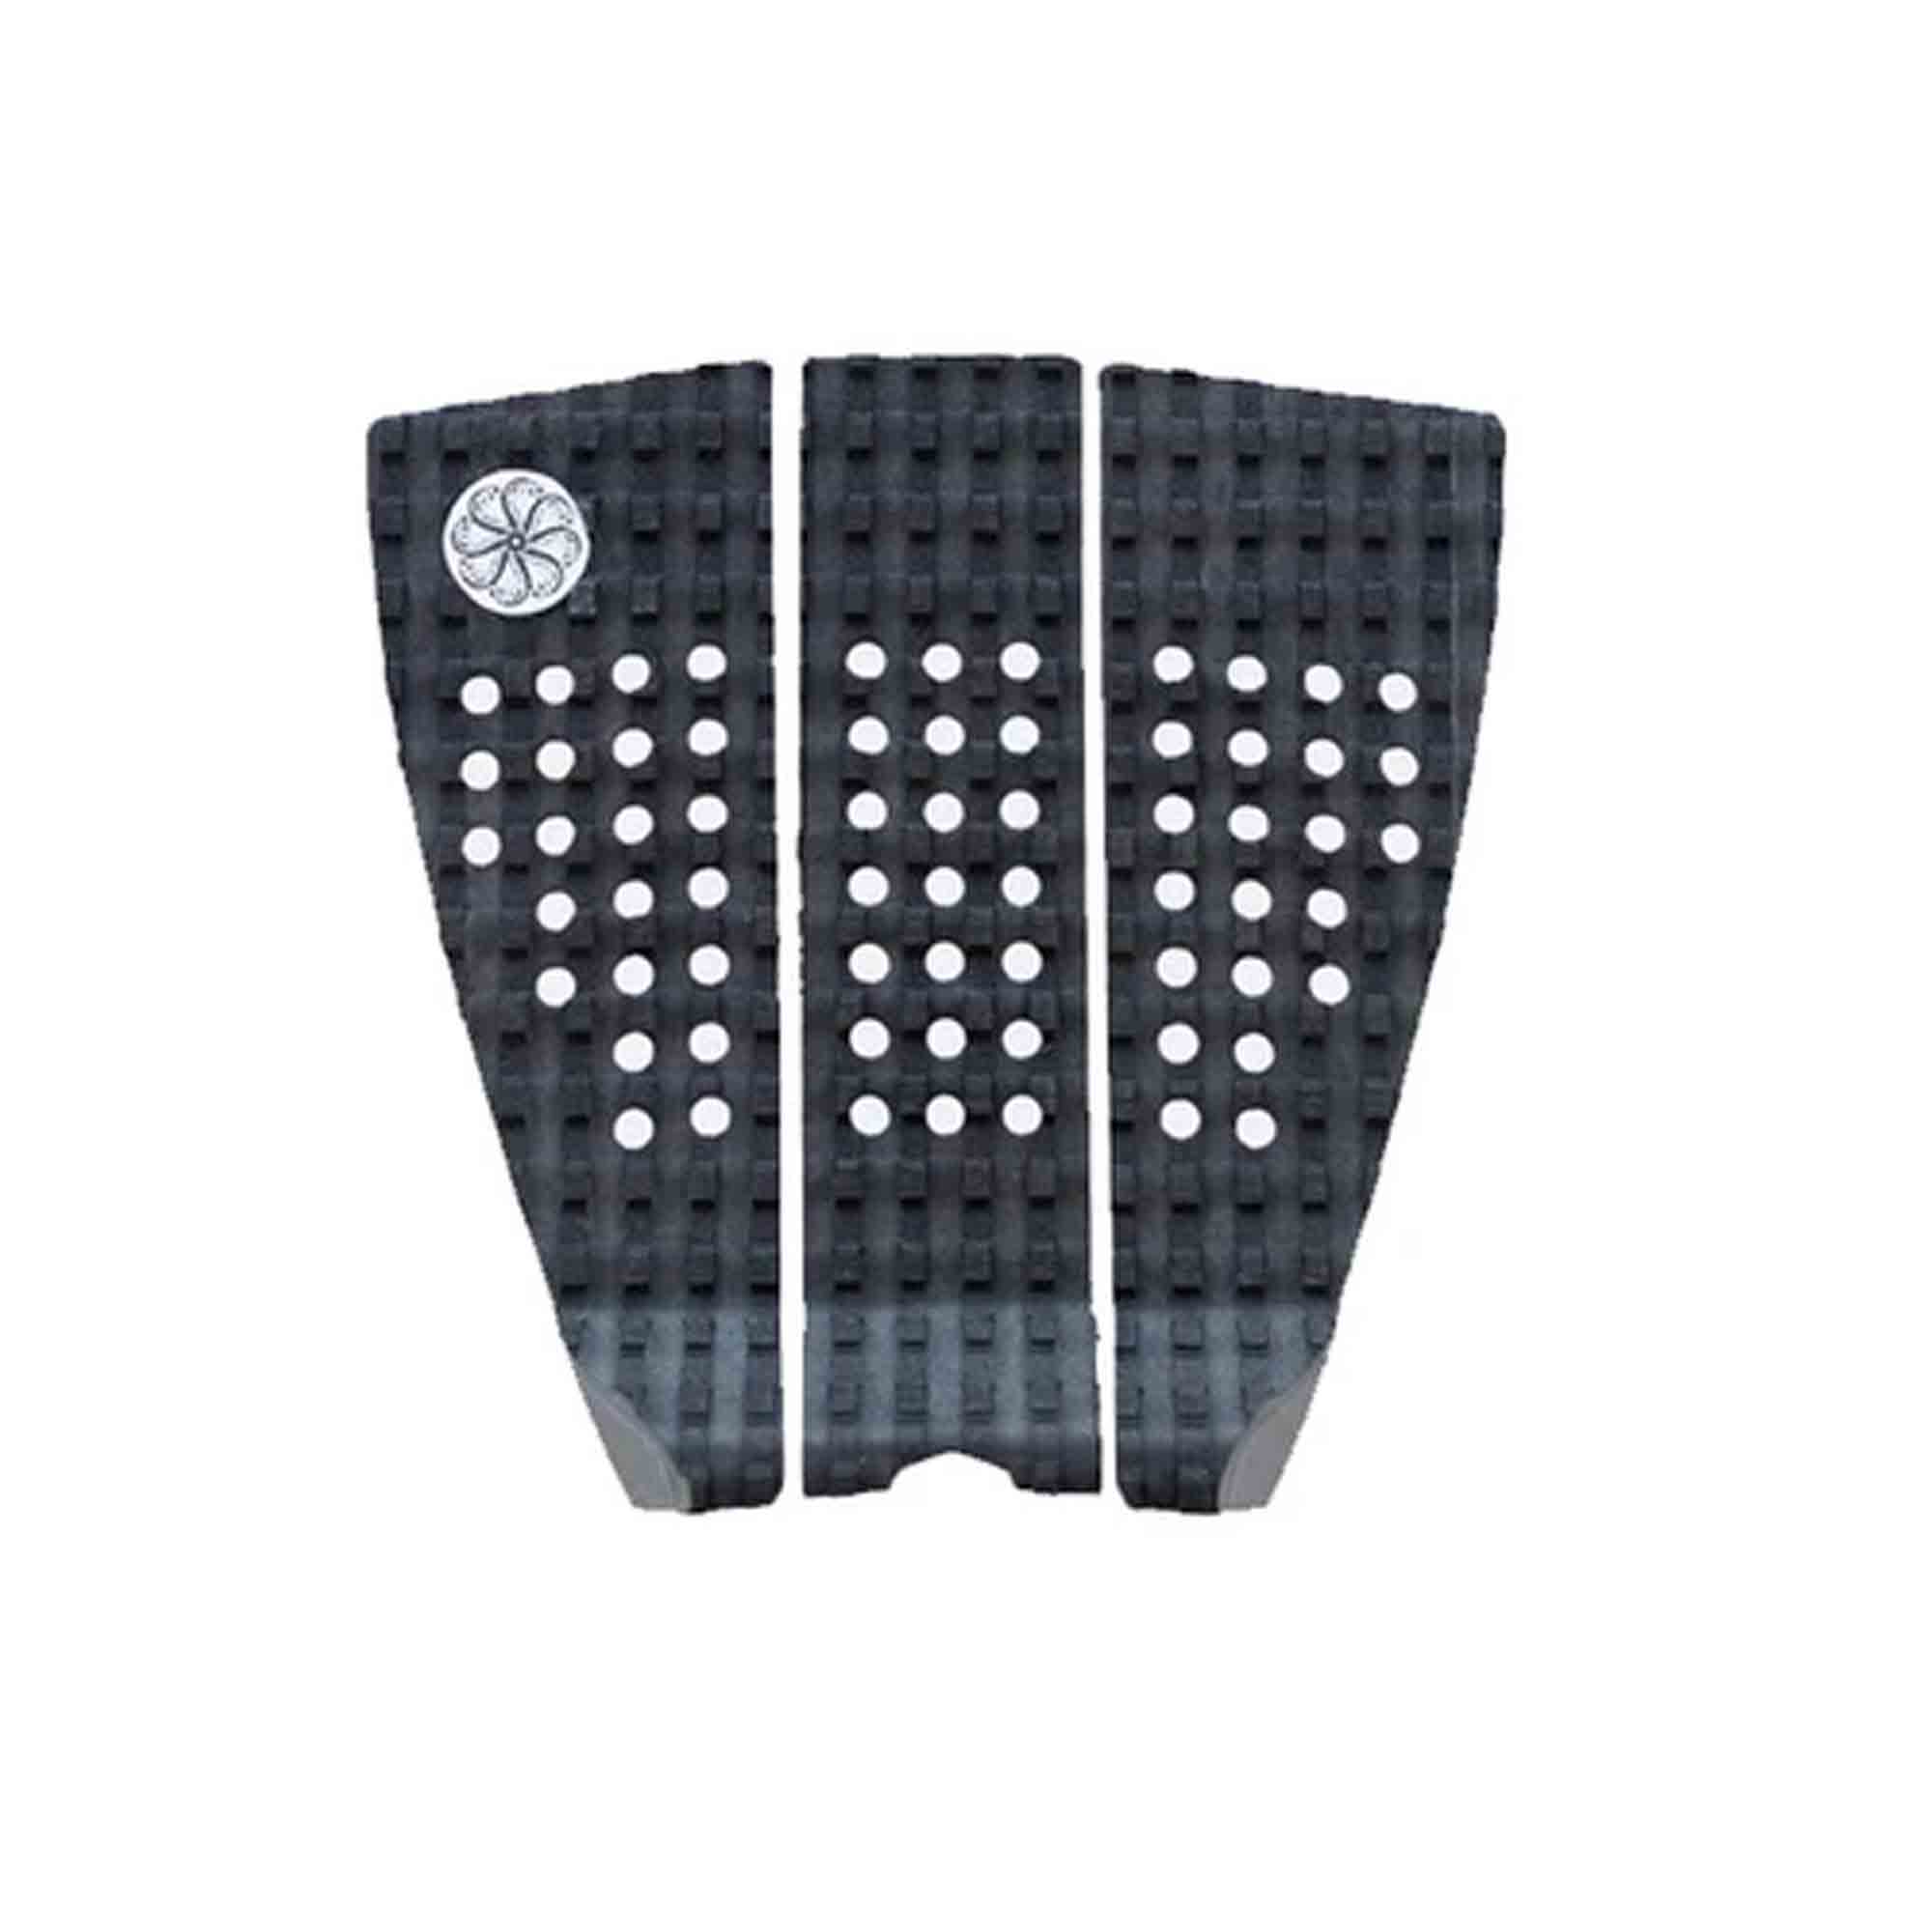 Octopus Brendon Gibbens Flat Traction Pad - Black